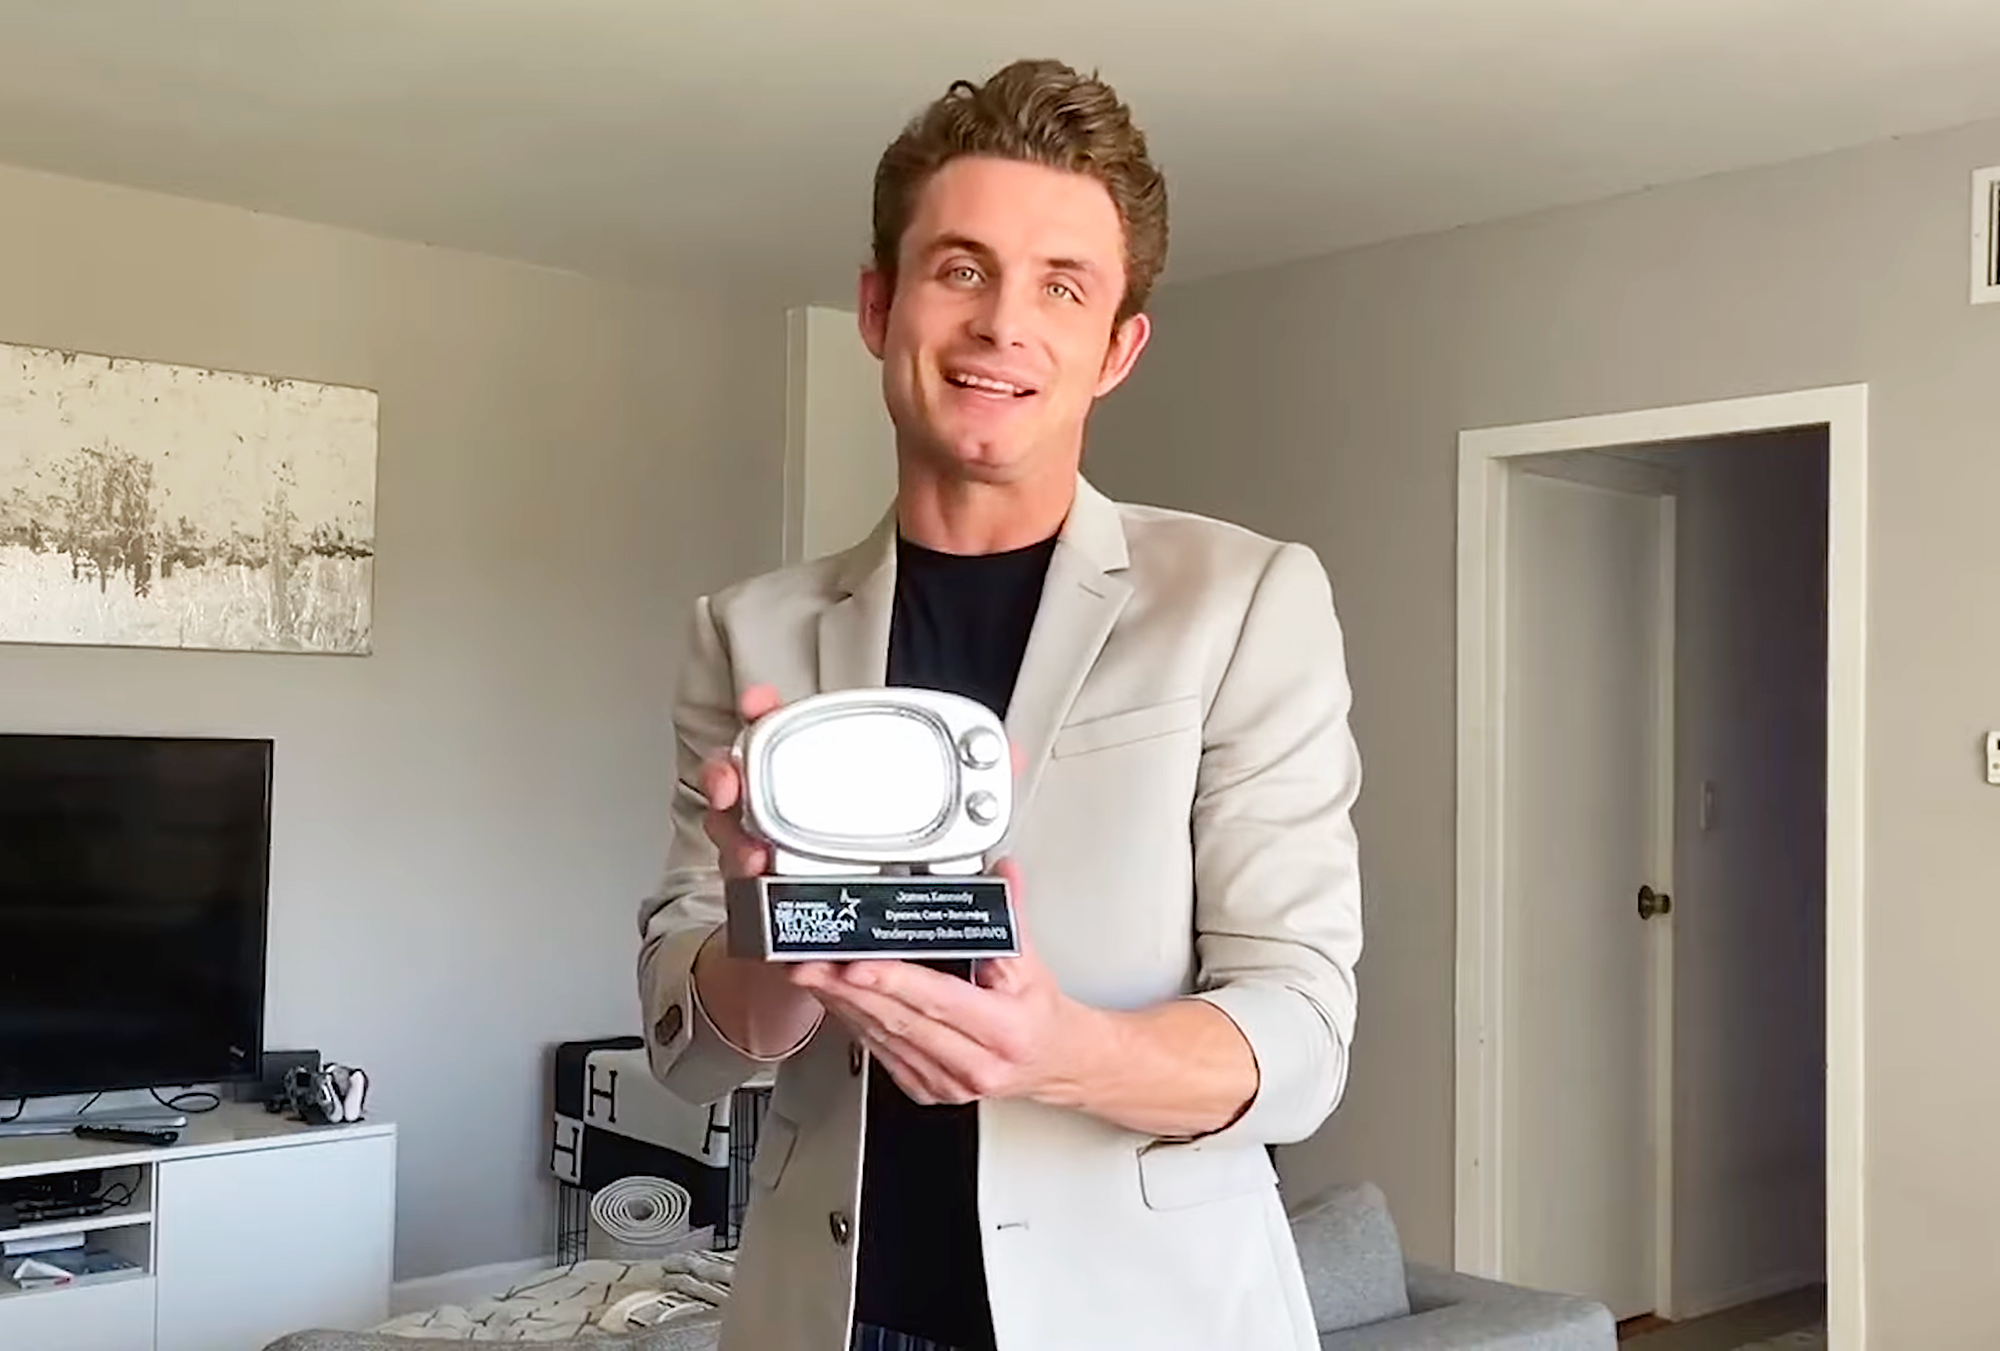 Vanderpump Rules James Kennedy Awkwardly Presents Award for Dynamic Cast Returning After 4 Firings